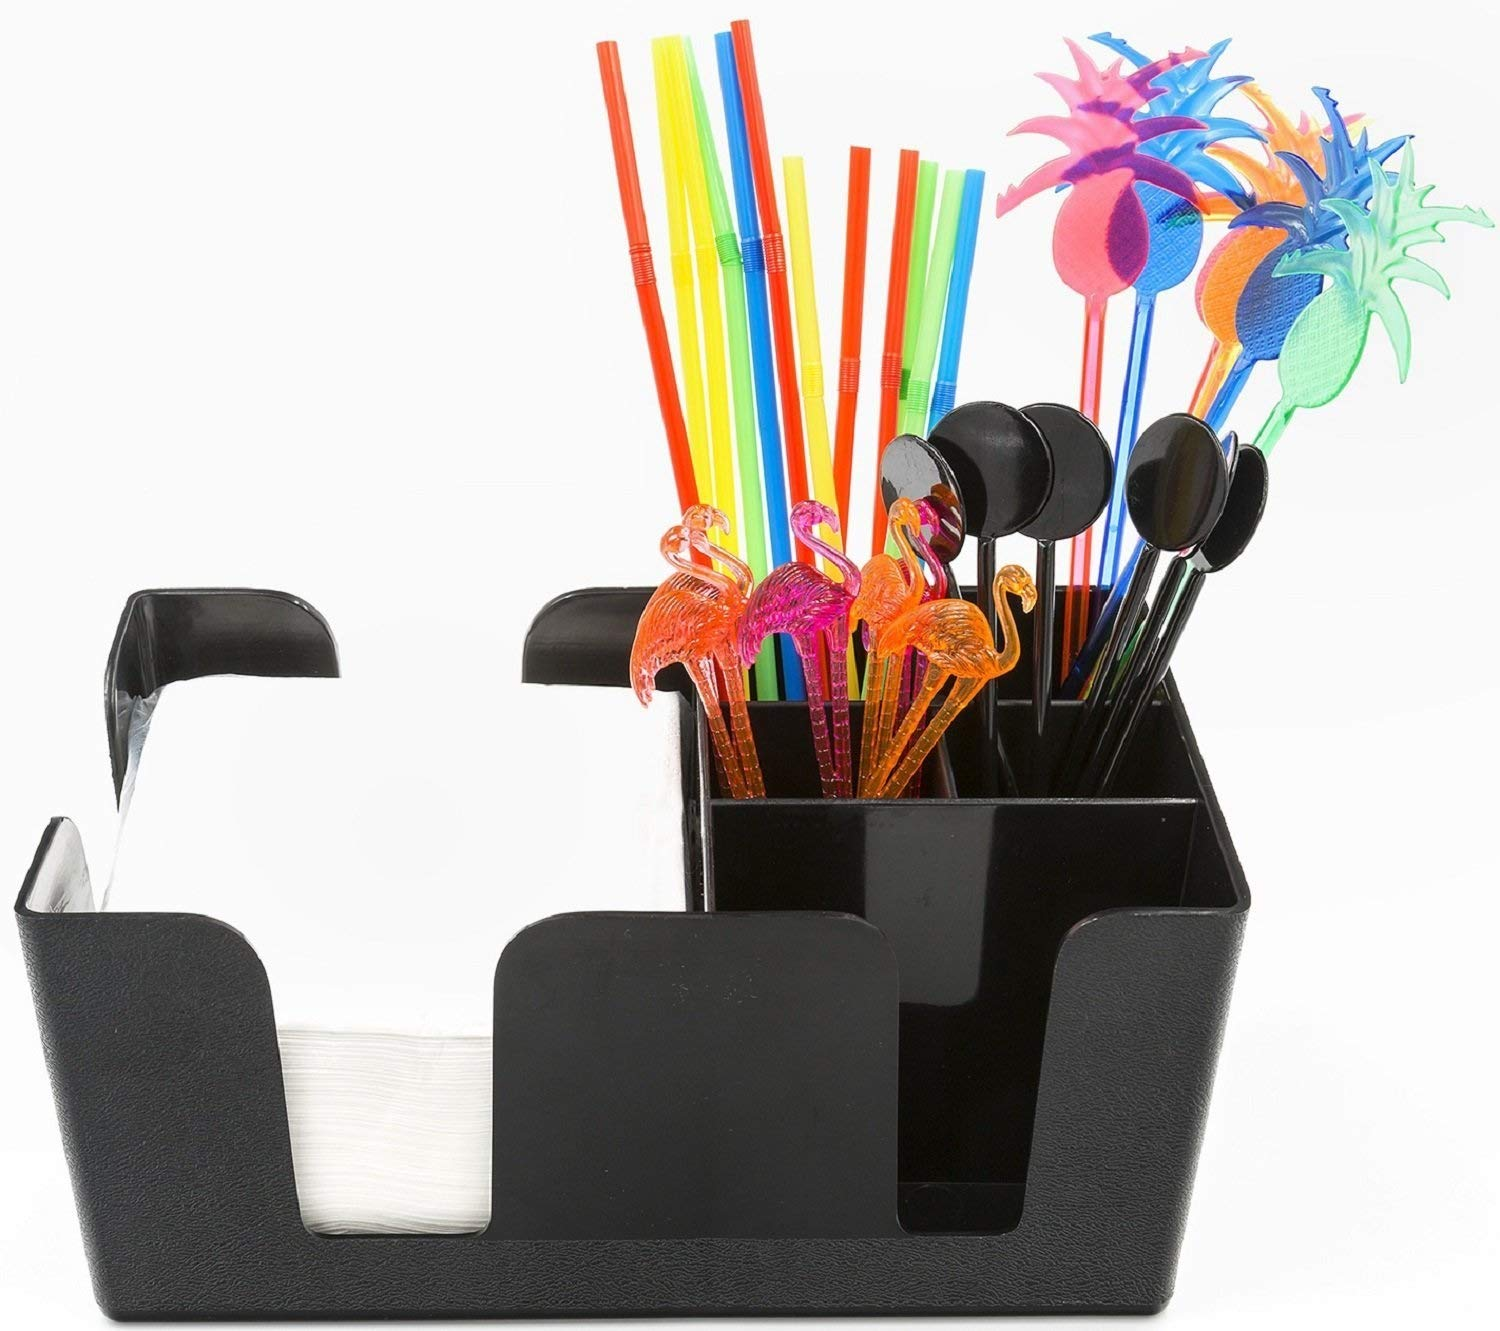 Bar Caddy (6 Compartments) - Bar Supplies Included - All Set and Ready To Go - Includes Napkins, Cocktail Straws, and Swizzle Sticks - Heavy Duty Refillable Bar Organizer (Black) by Trendy Bartender